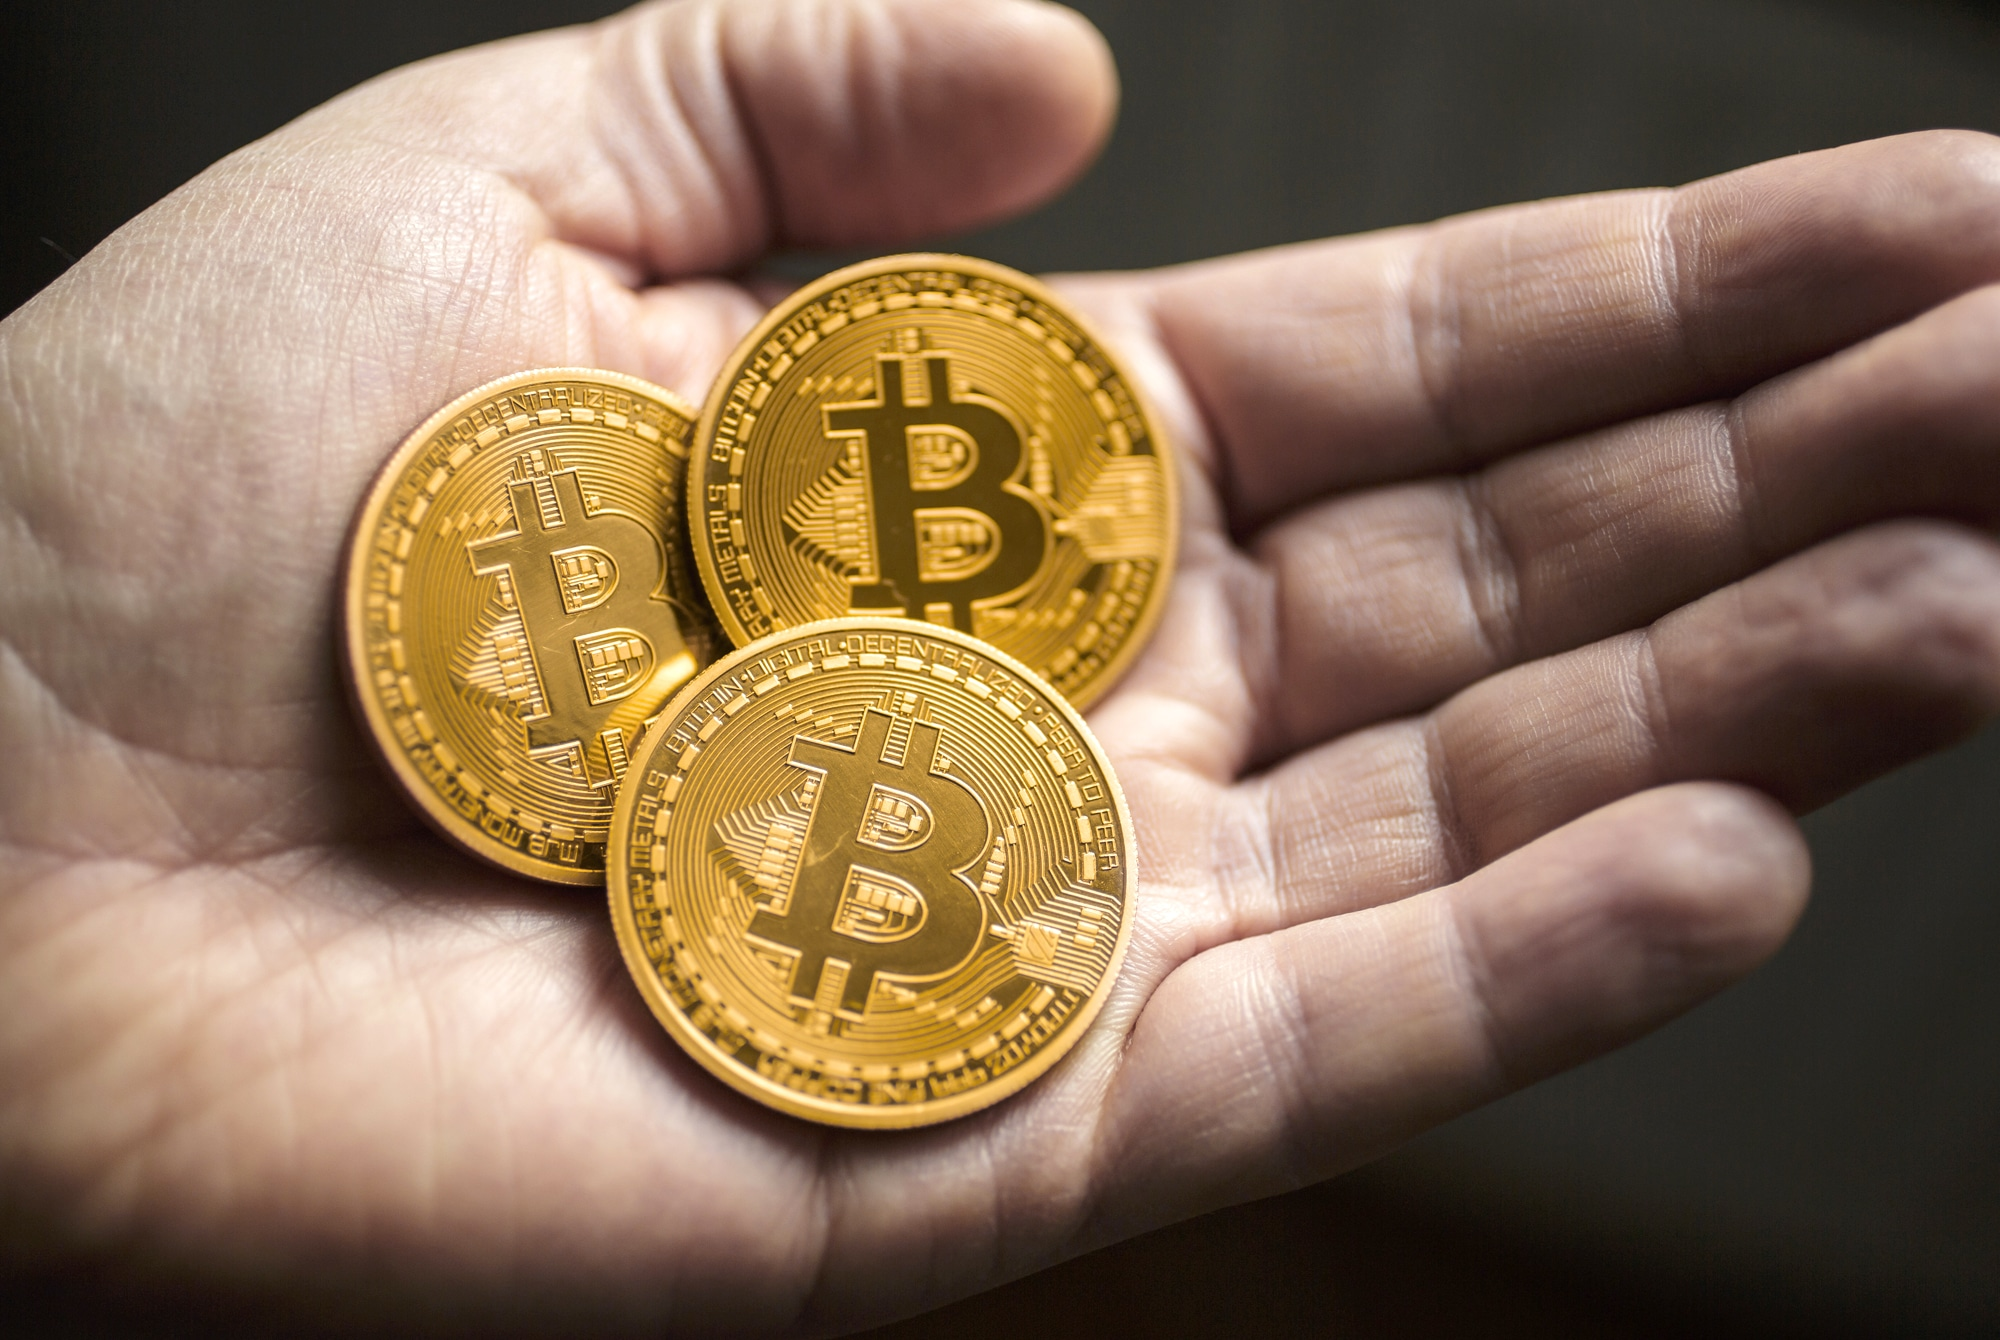 BERLIN, GERMANY - JANUARY 13: In this photo illustration model Bitcoins lies in a hand on January 13, 2014 in Berlin, Germany. (Photo by Thomas Trutschel/Photothek via Getty Images)